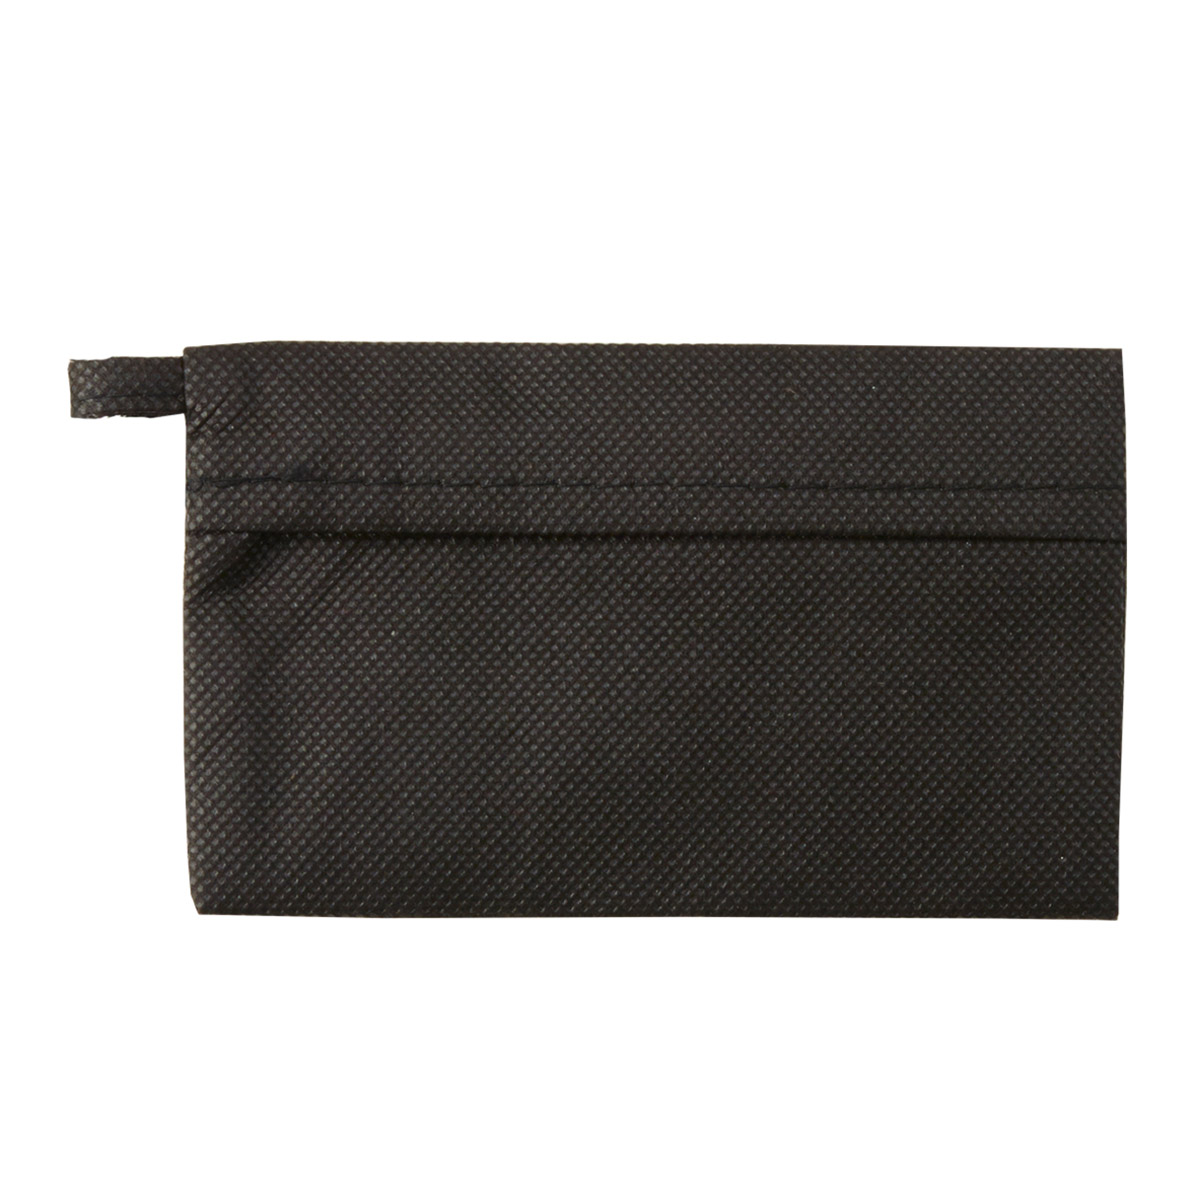 Black Quick Care™ Non-Woven First Aid Kit